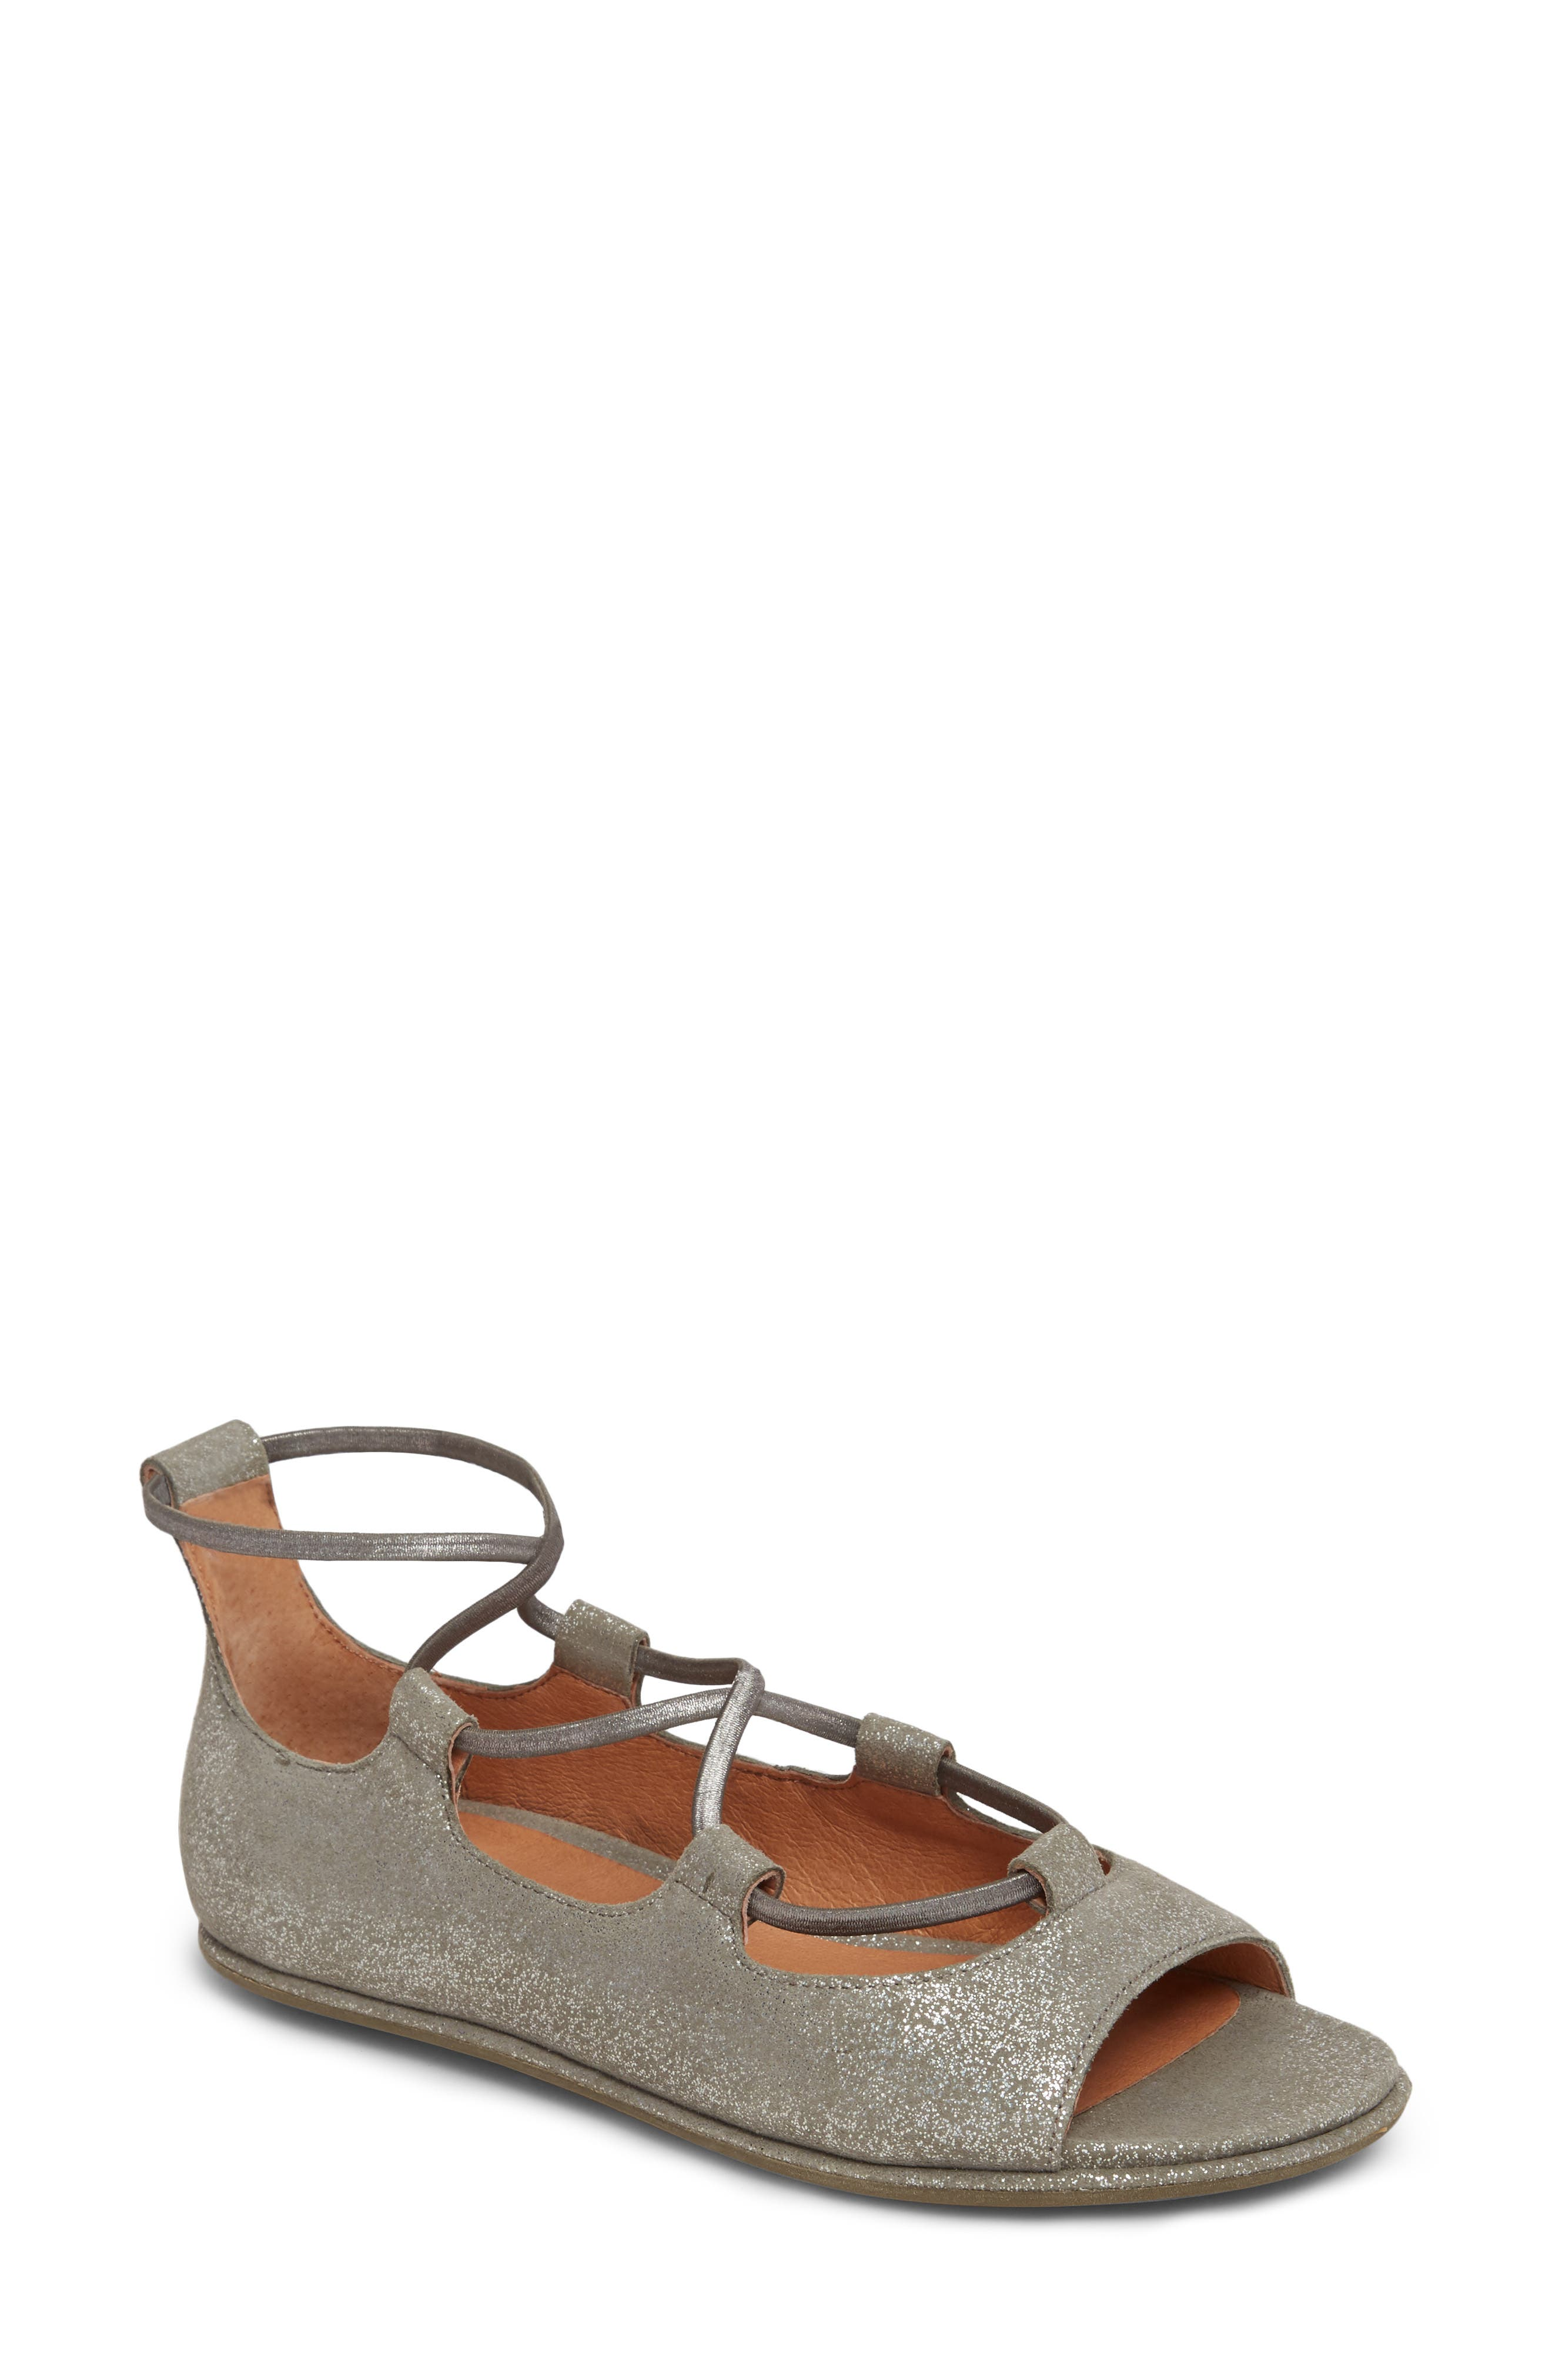 GENTLE SOULS BY KENNETH COLE Lark Sandal, Main, color, LIGHT PEWTER METALLIC LEATHER